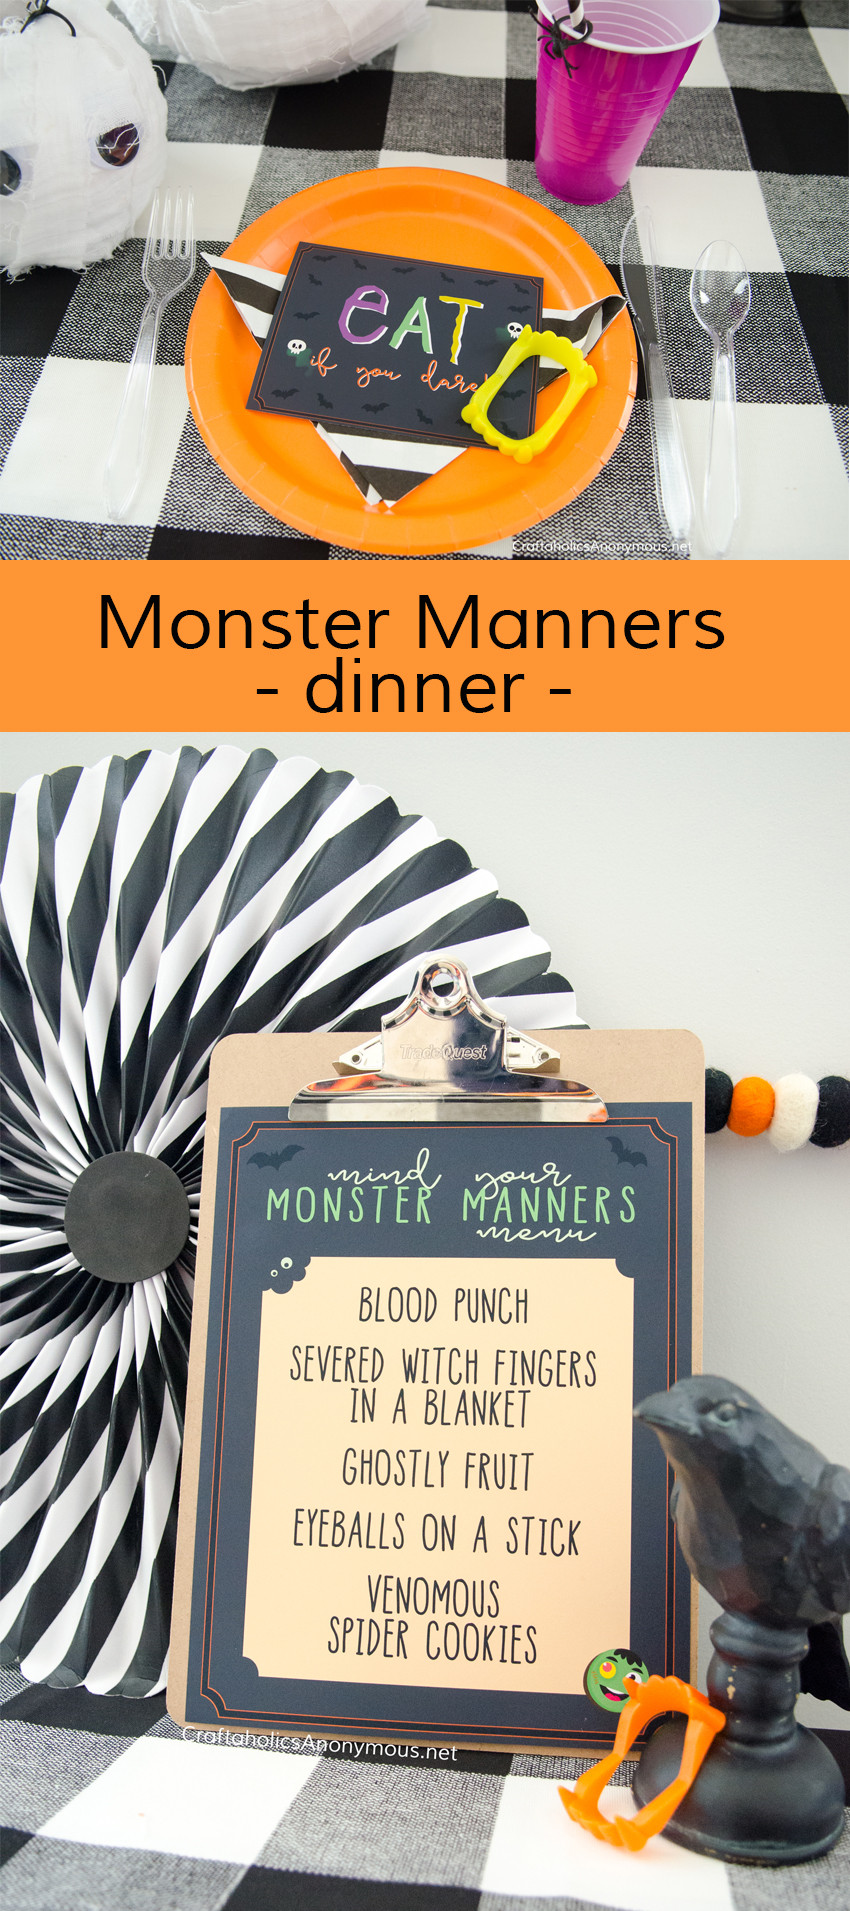 Halloween Monster Manners Dinner :: Great for Activity Days, youth, young women, fun halloween party idea! kids wear their costume to the dinner.